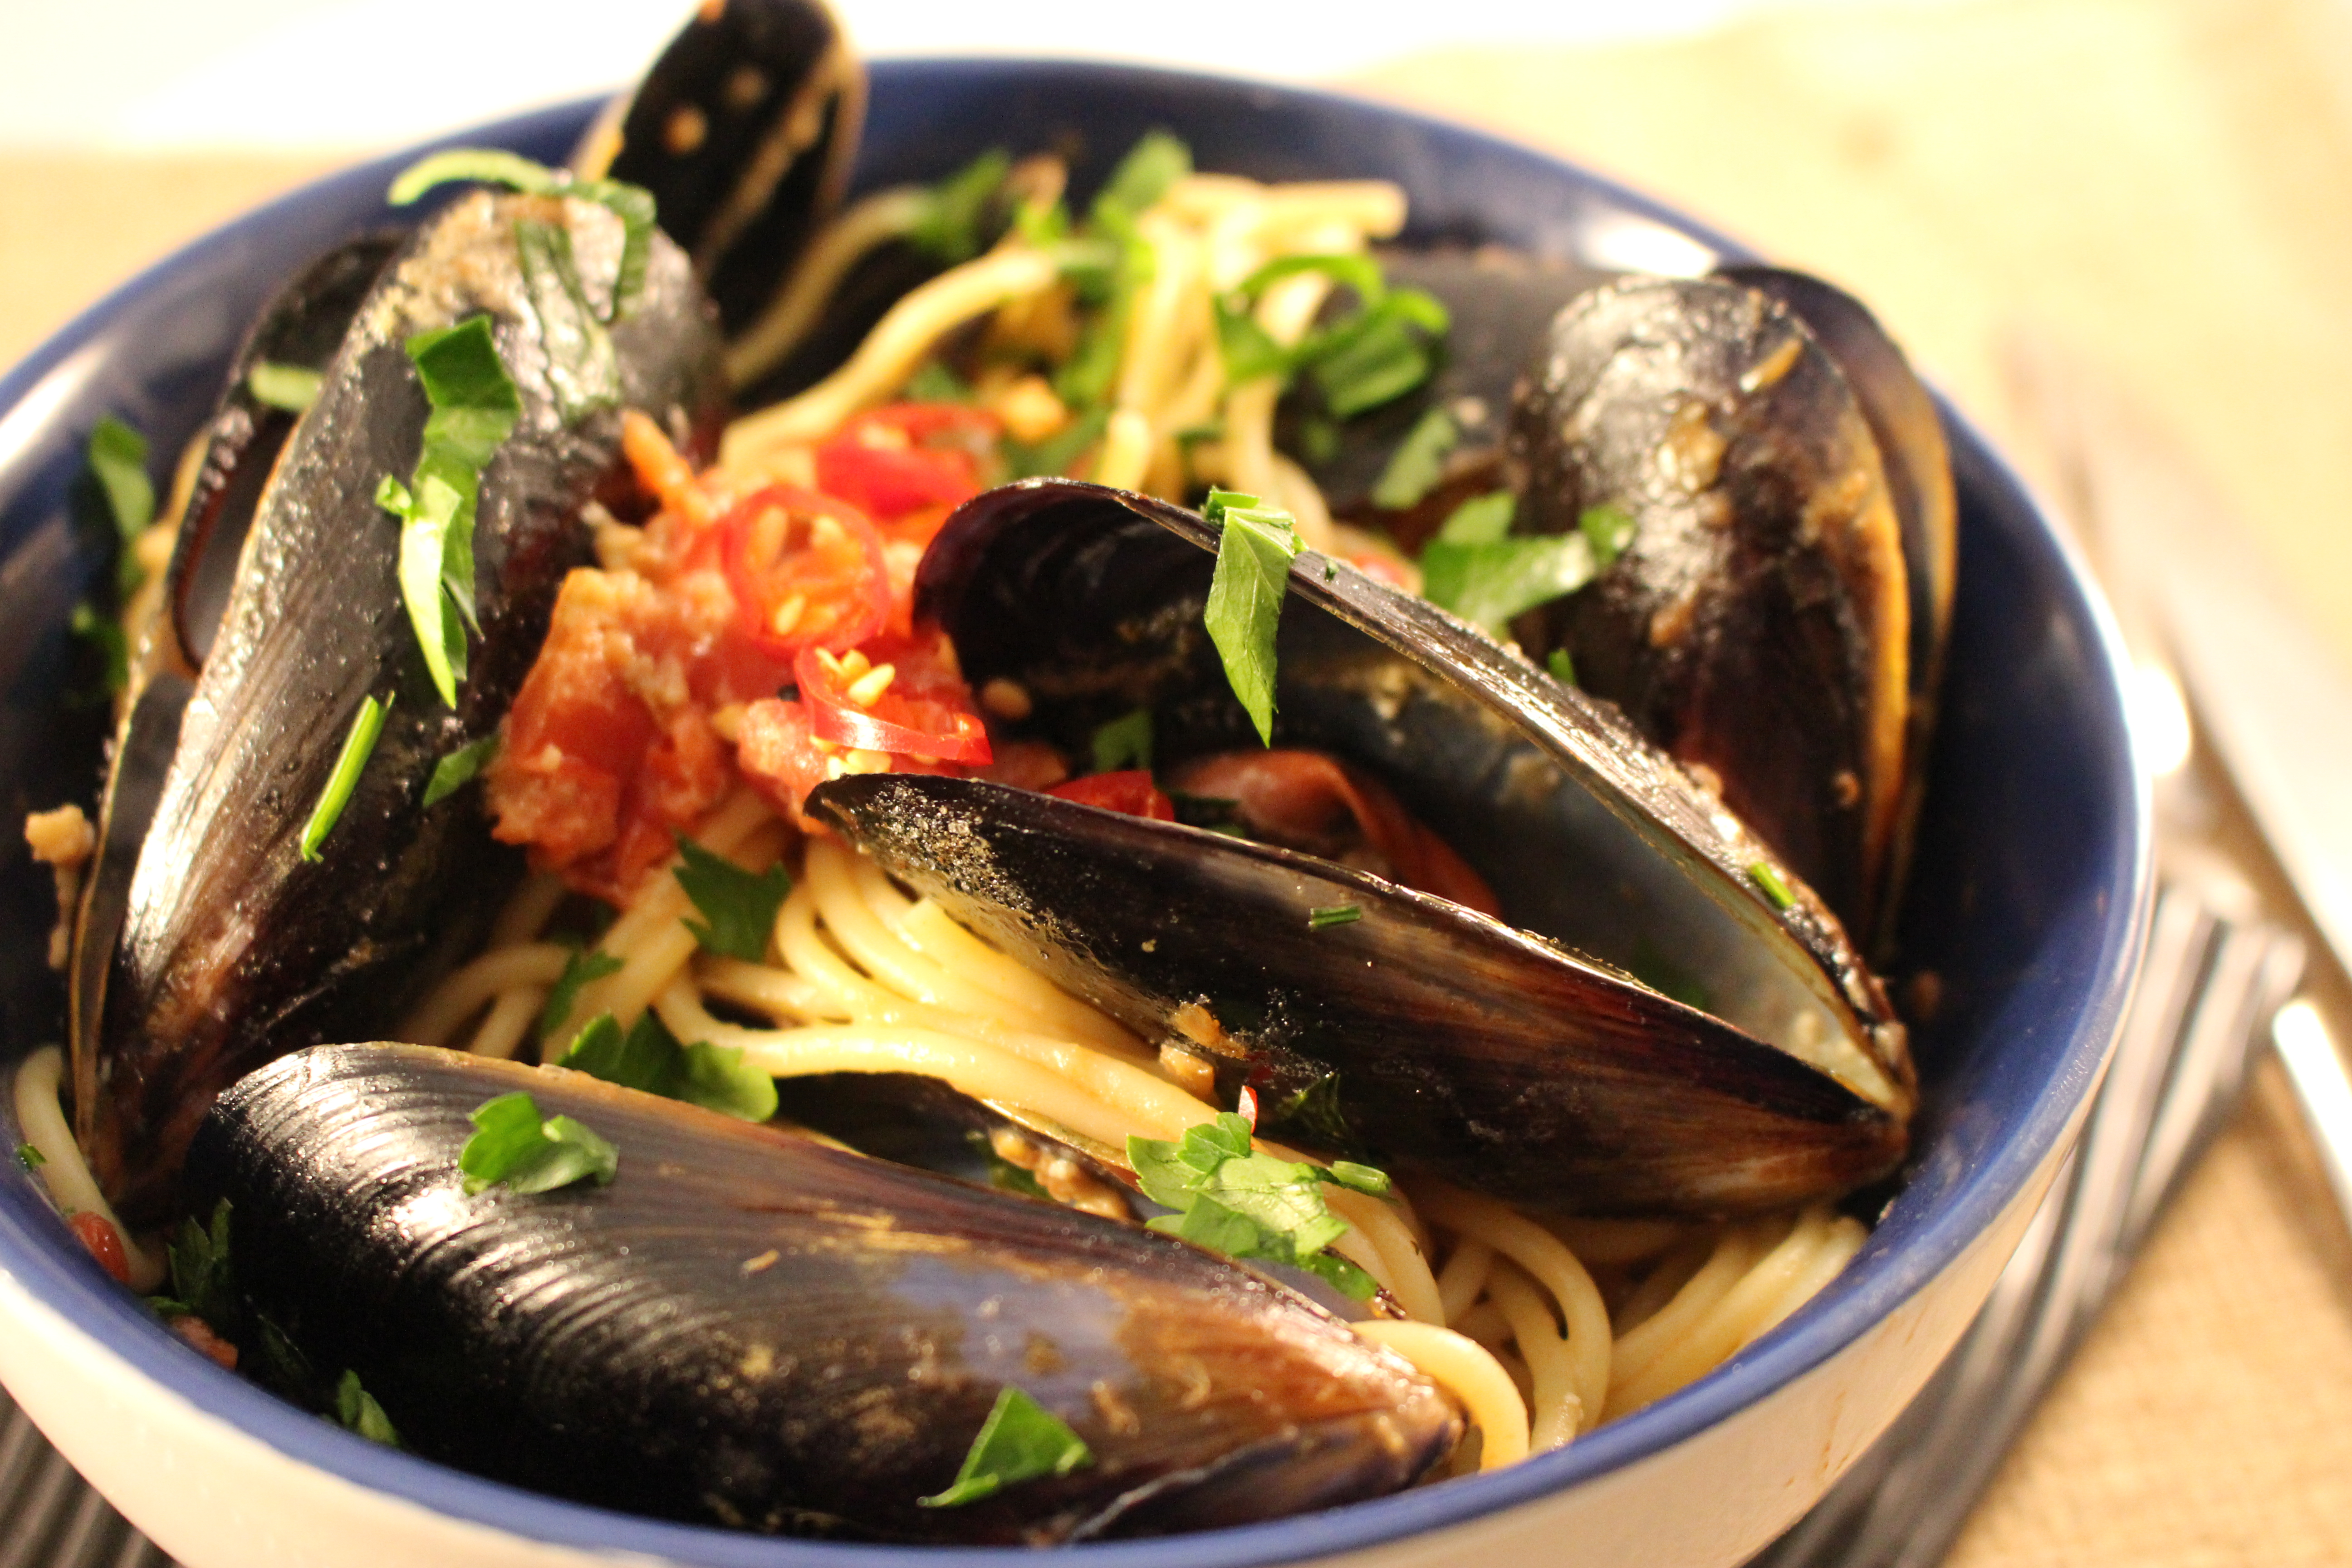 Steamed mussels Italian style with pasta